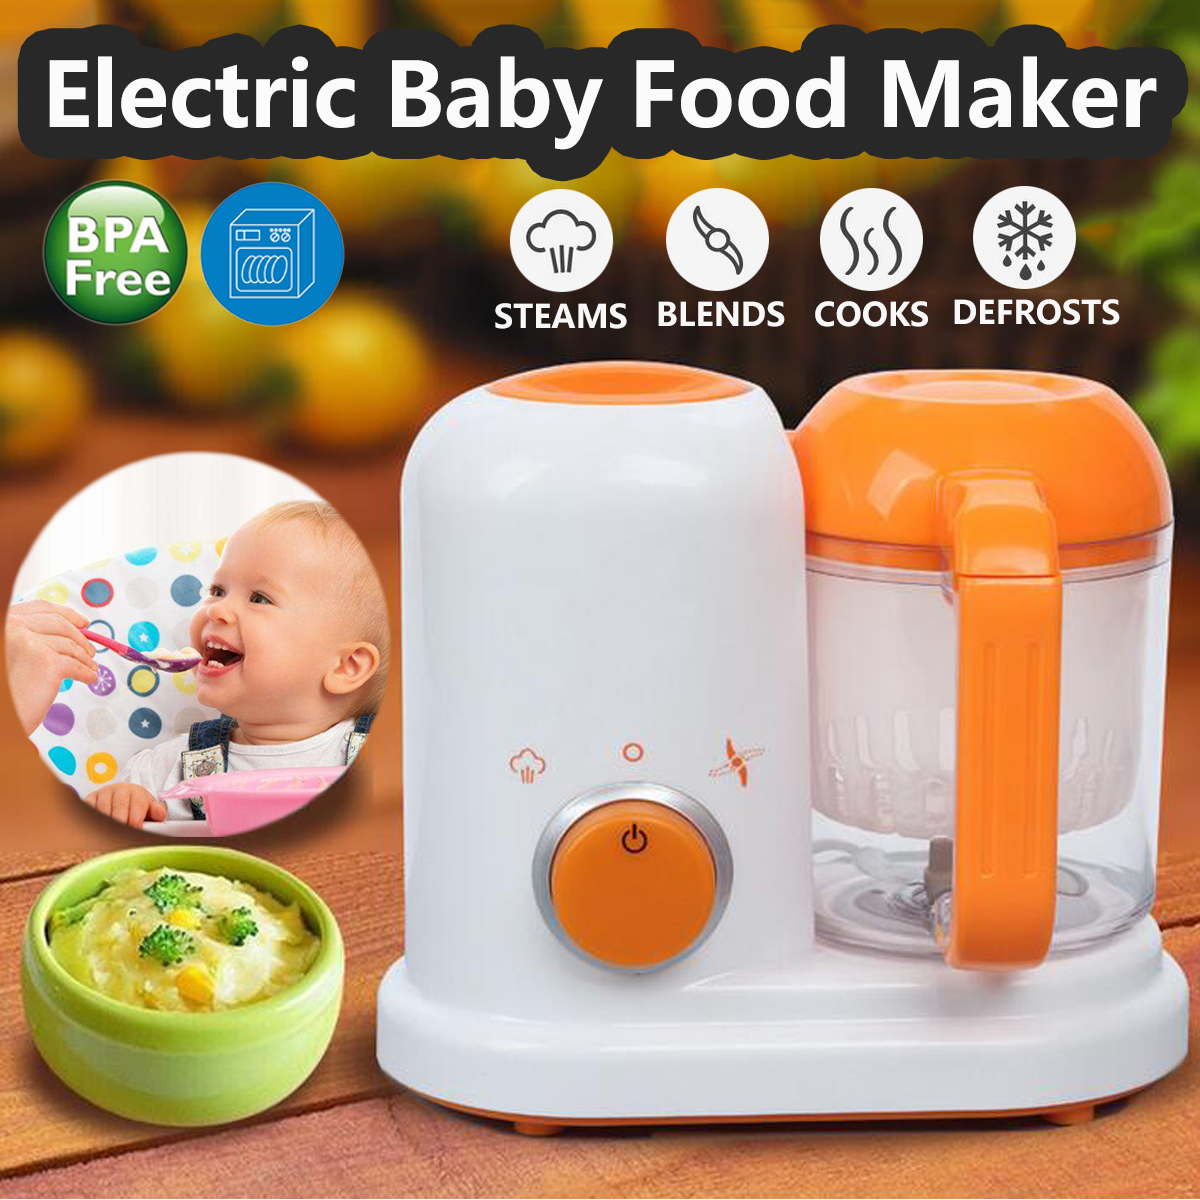 Warmtoo Toddler Blenders Electric Baby Food Maker Steamer Processor BPA Free Food-Graded PP EU AC 200-250V Steam Food Safe